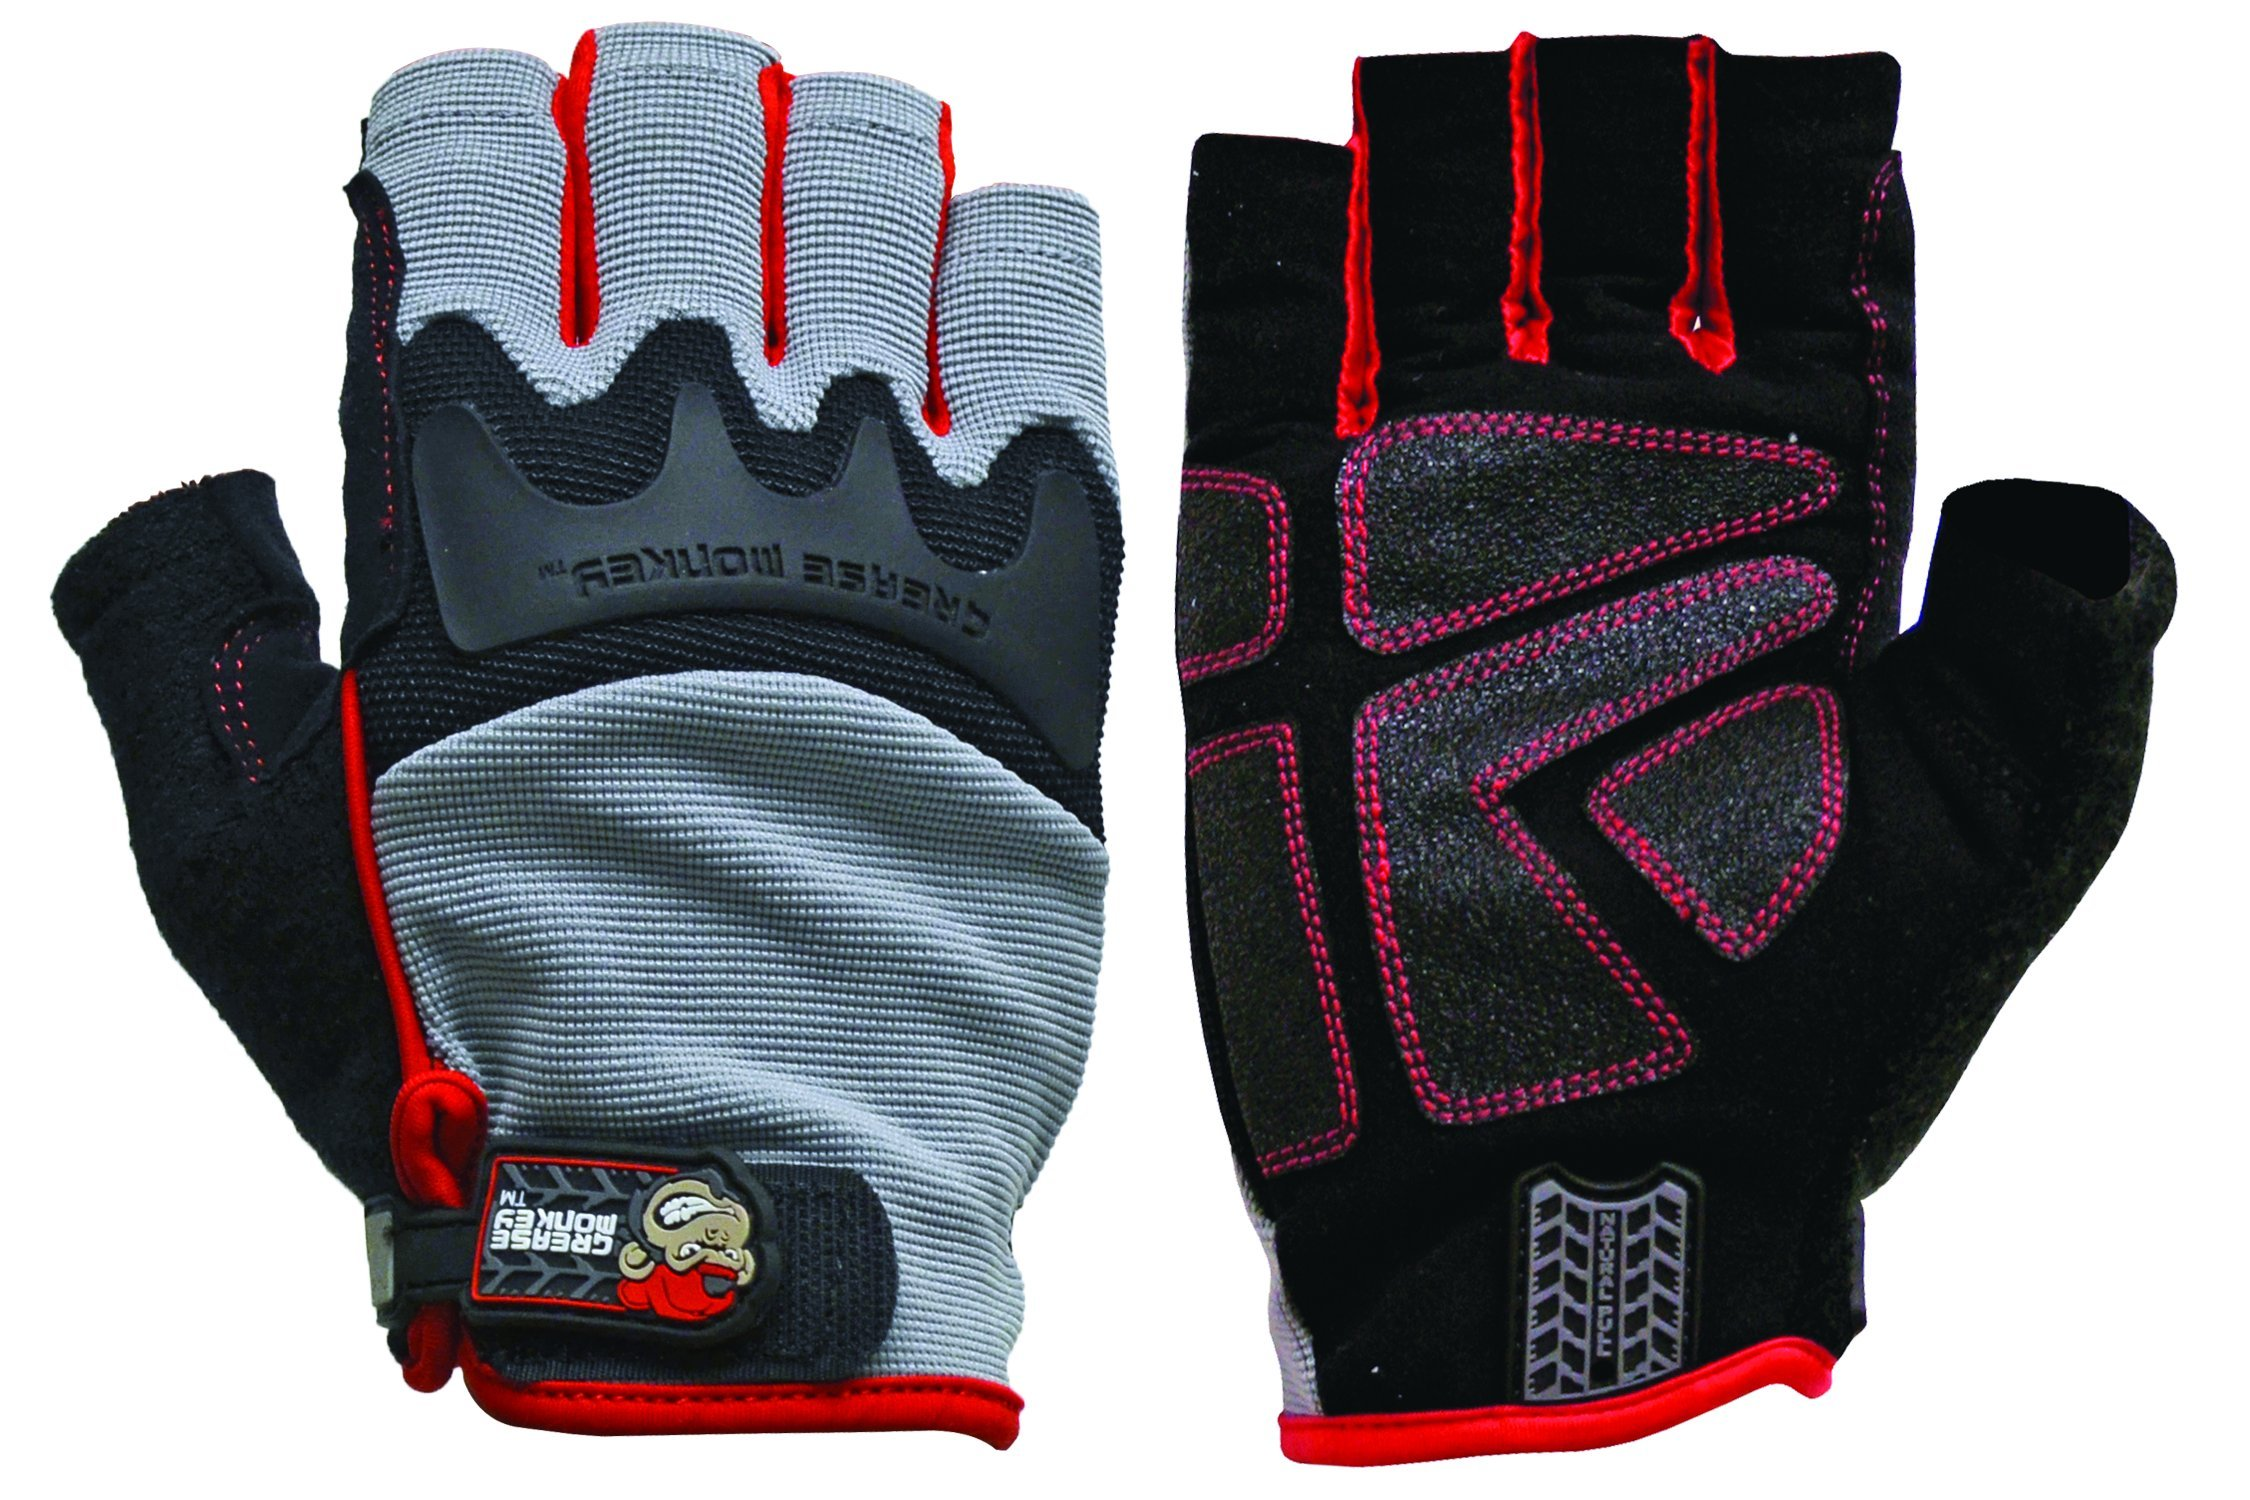 Big Time Products Grease Monkey Pro Fingerless Gloves (Medium) by '47 (Image #1)